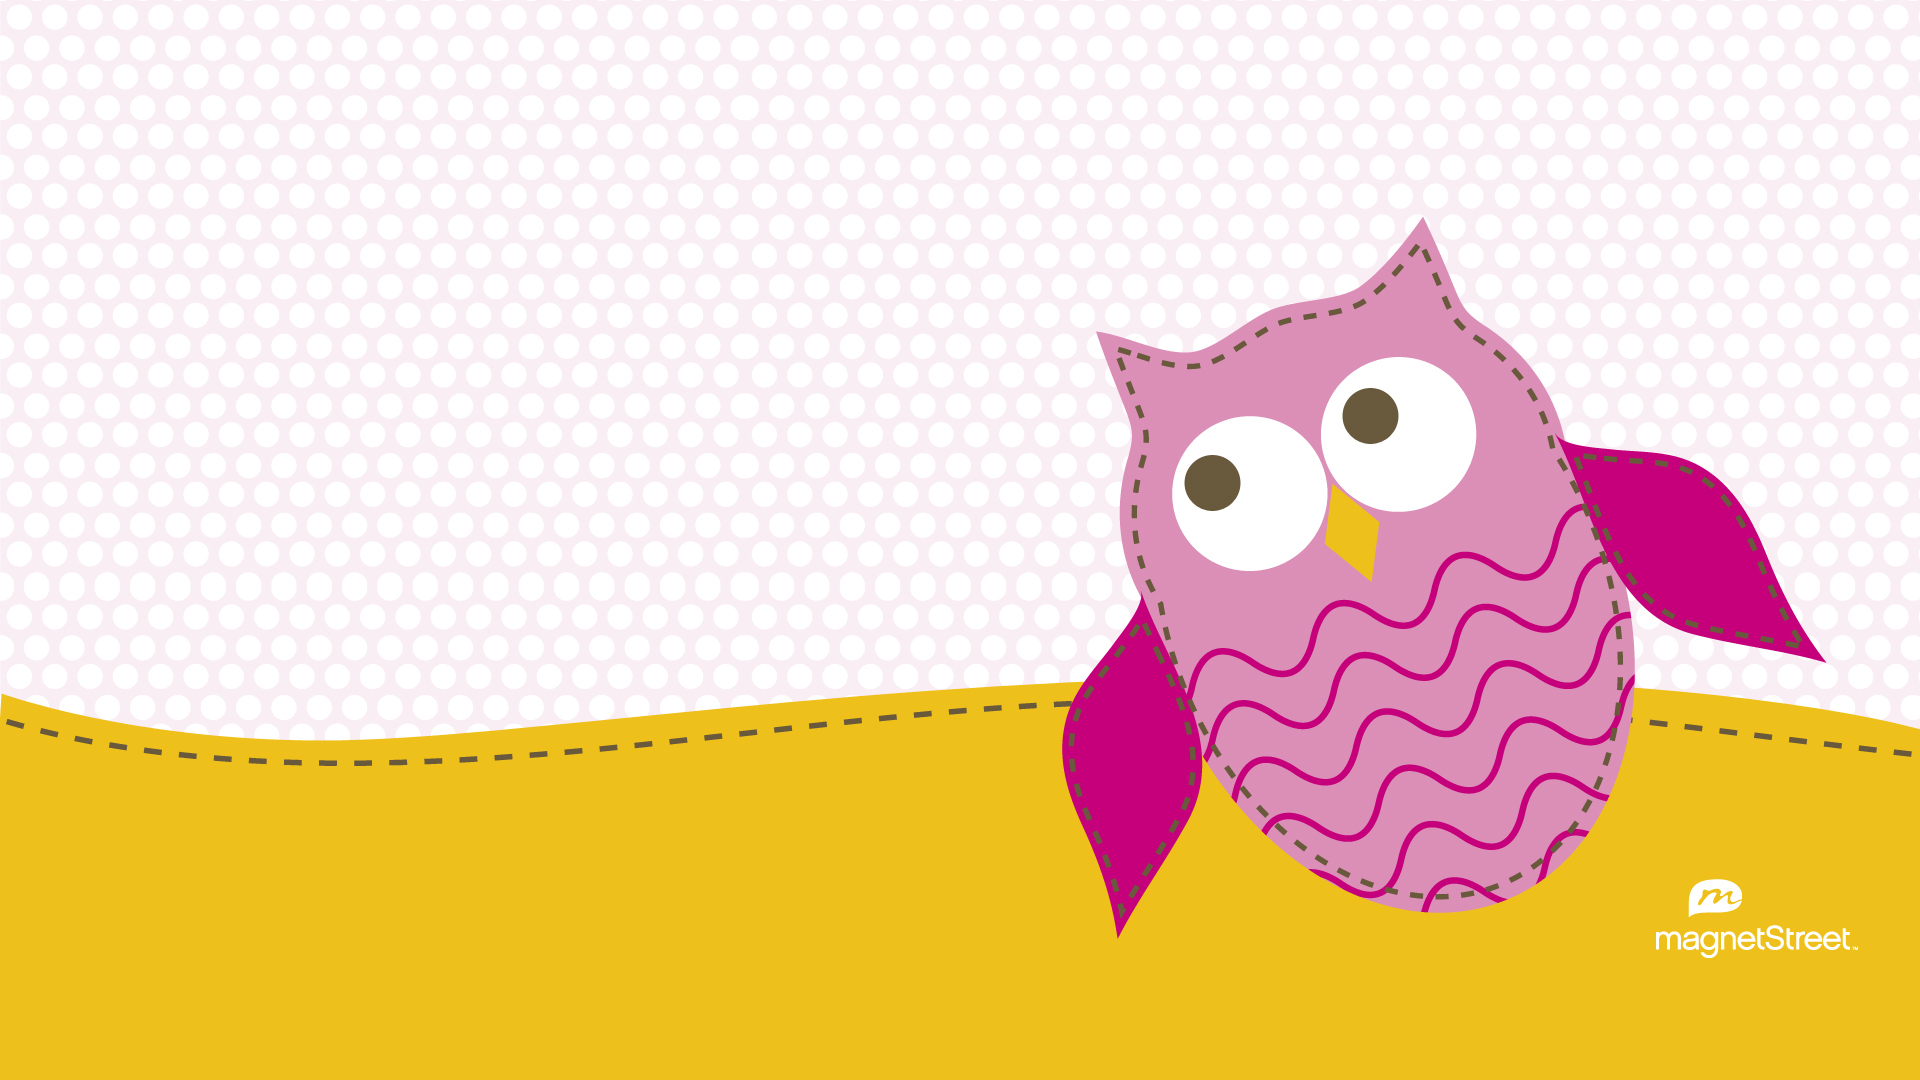 Cute Owl Wallpaper 1920x1080 45993